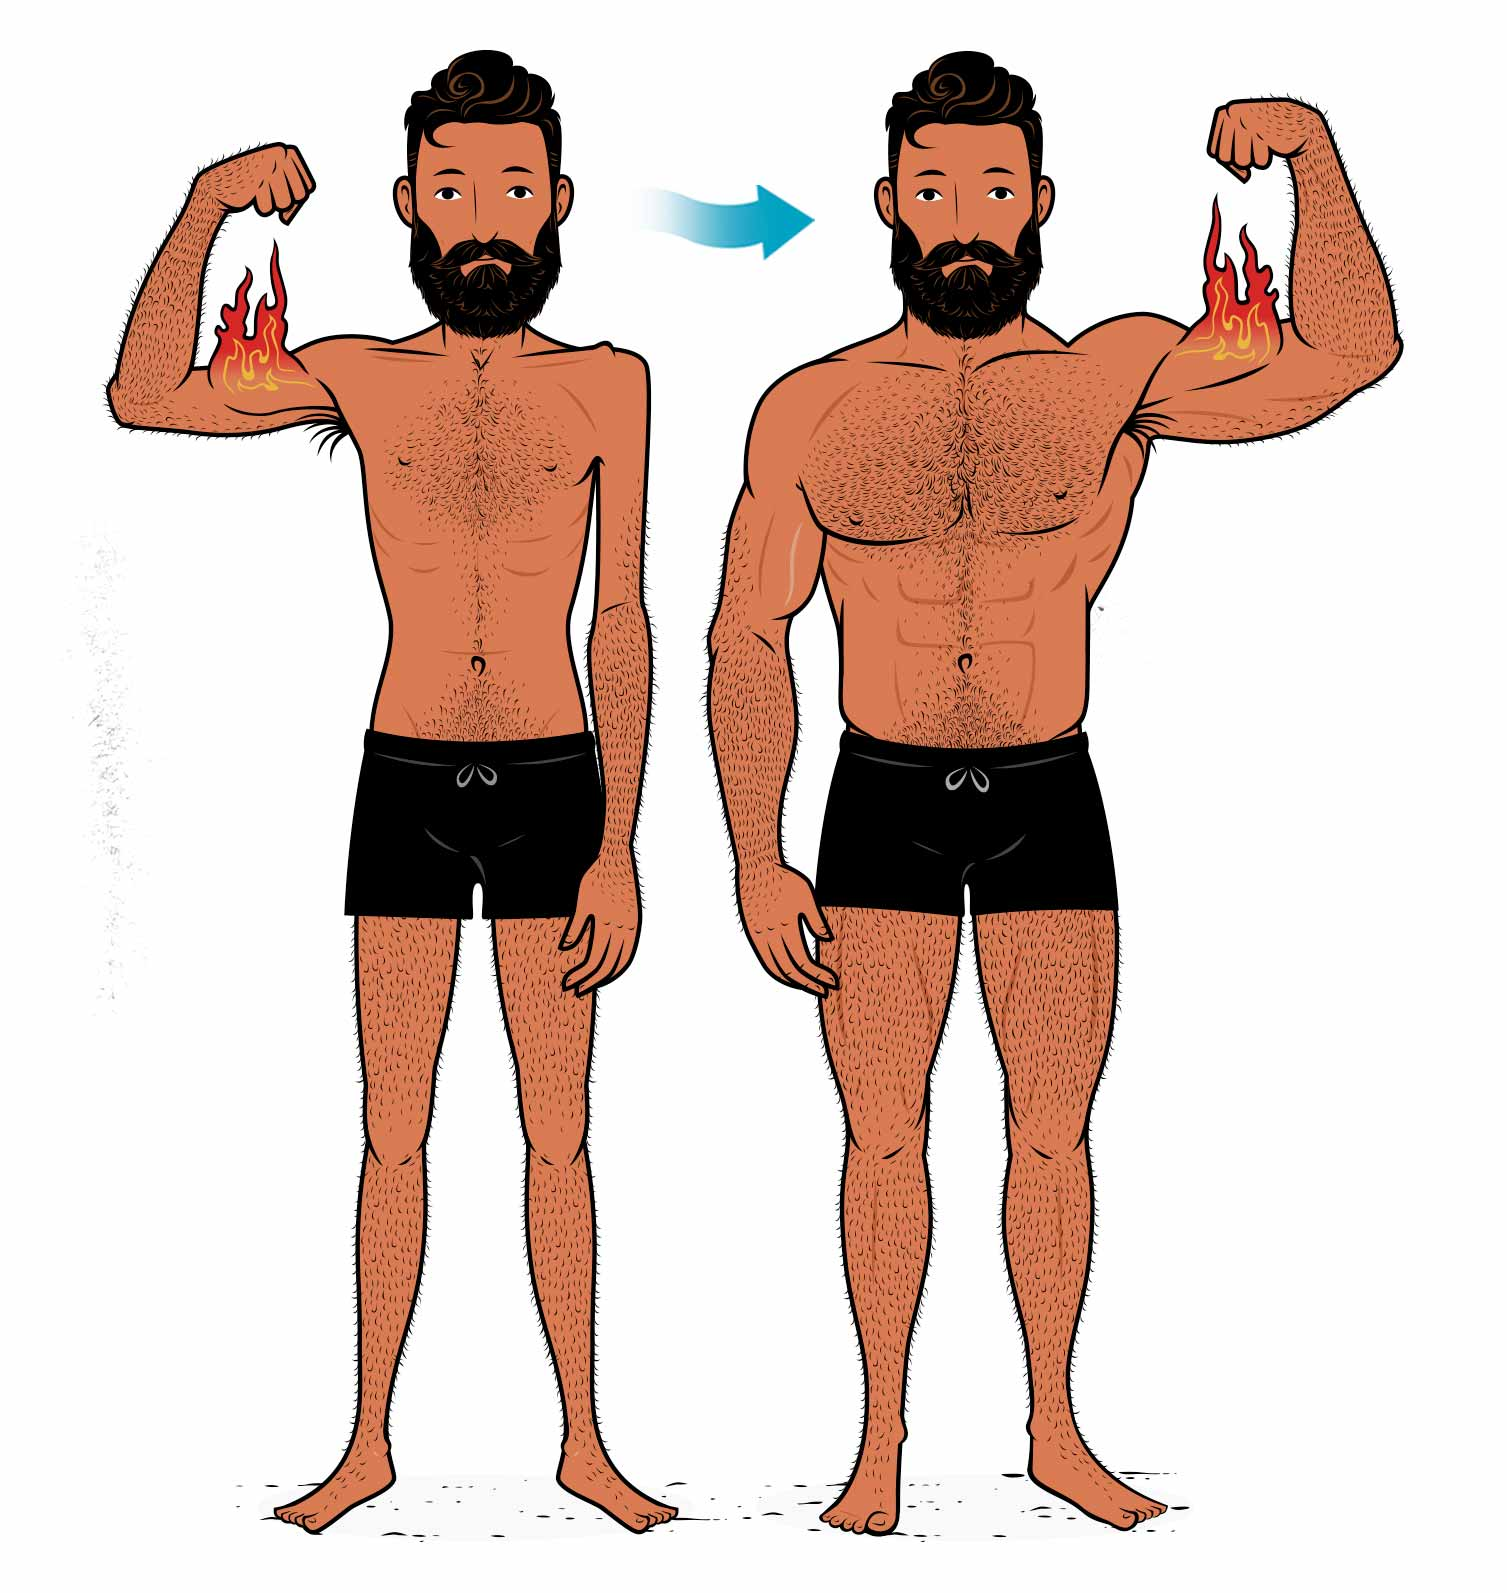 Outlift illustration of a skinny man building muscle.